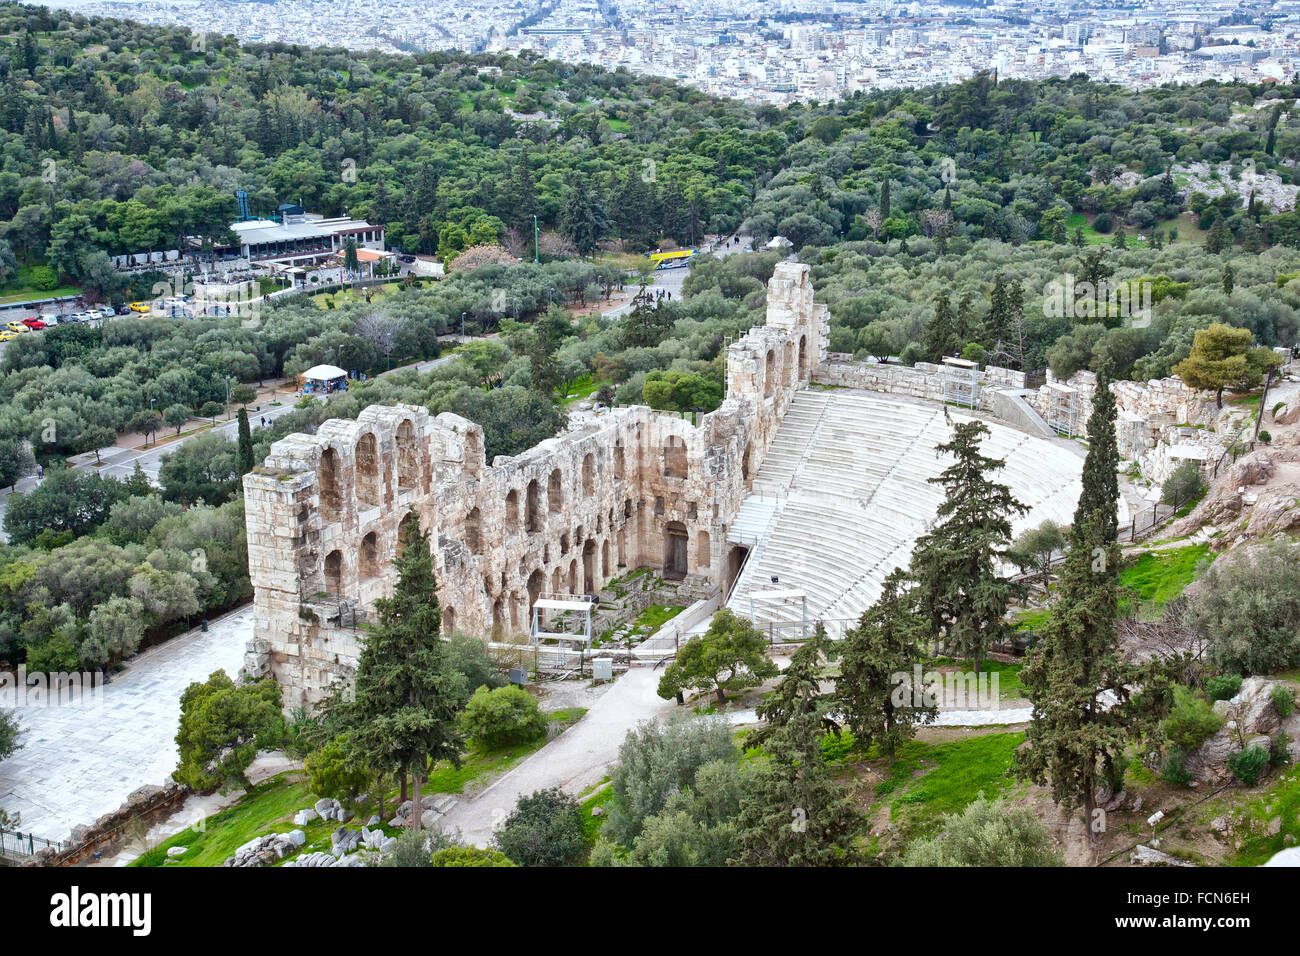 Remains of Odeon of Herodes Atticus near the Acropolis of Athens. - Stock Image